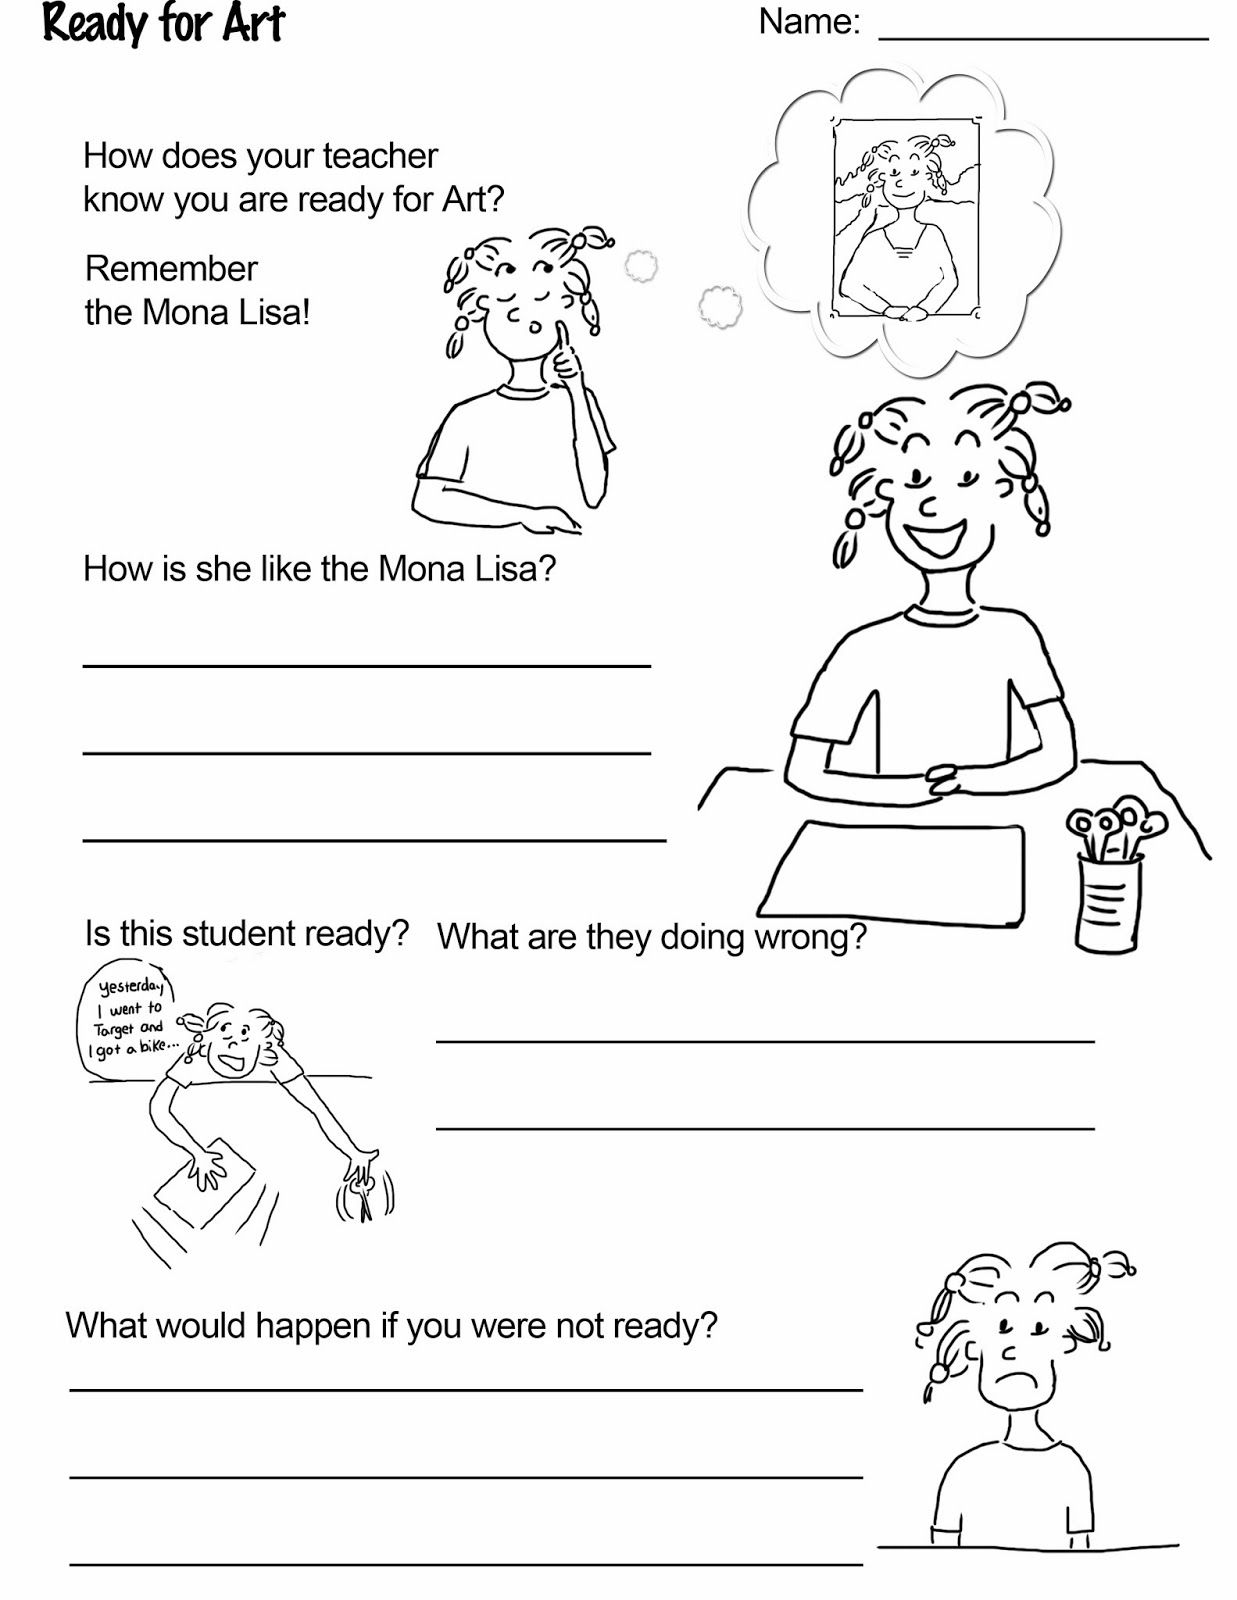 Free Worksheet Download From Art Rules A Booklet That Helps Teach And Reinforce The Rules And